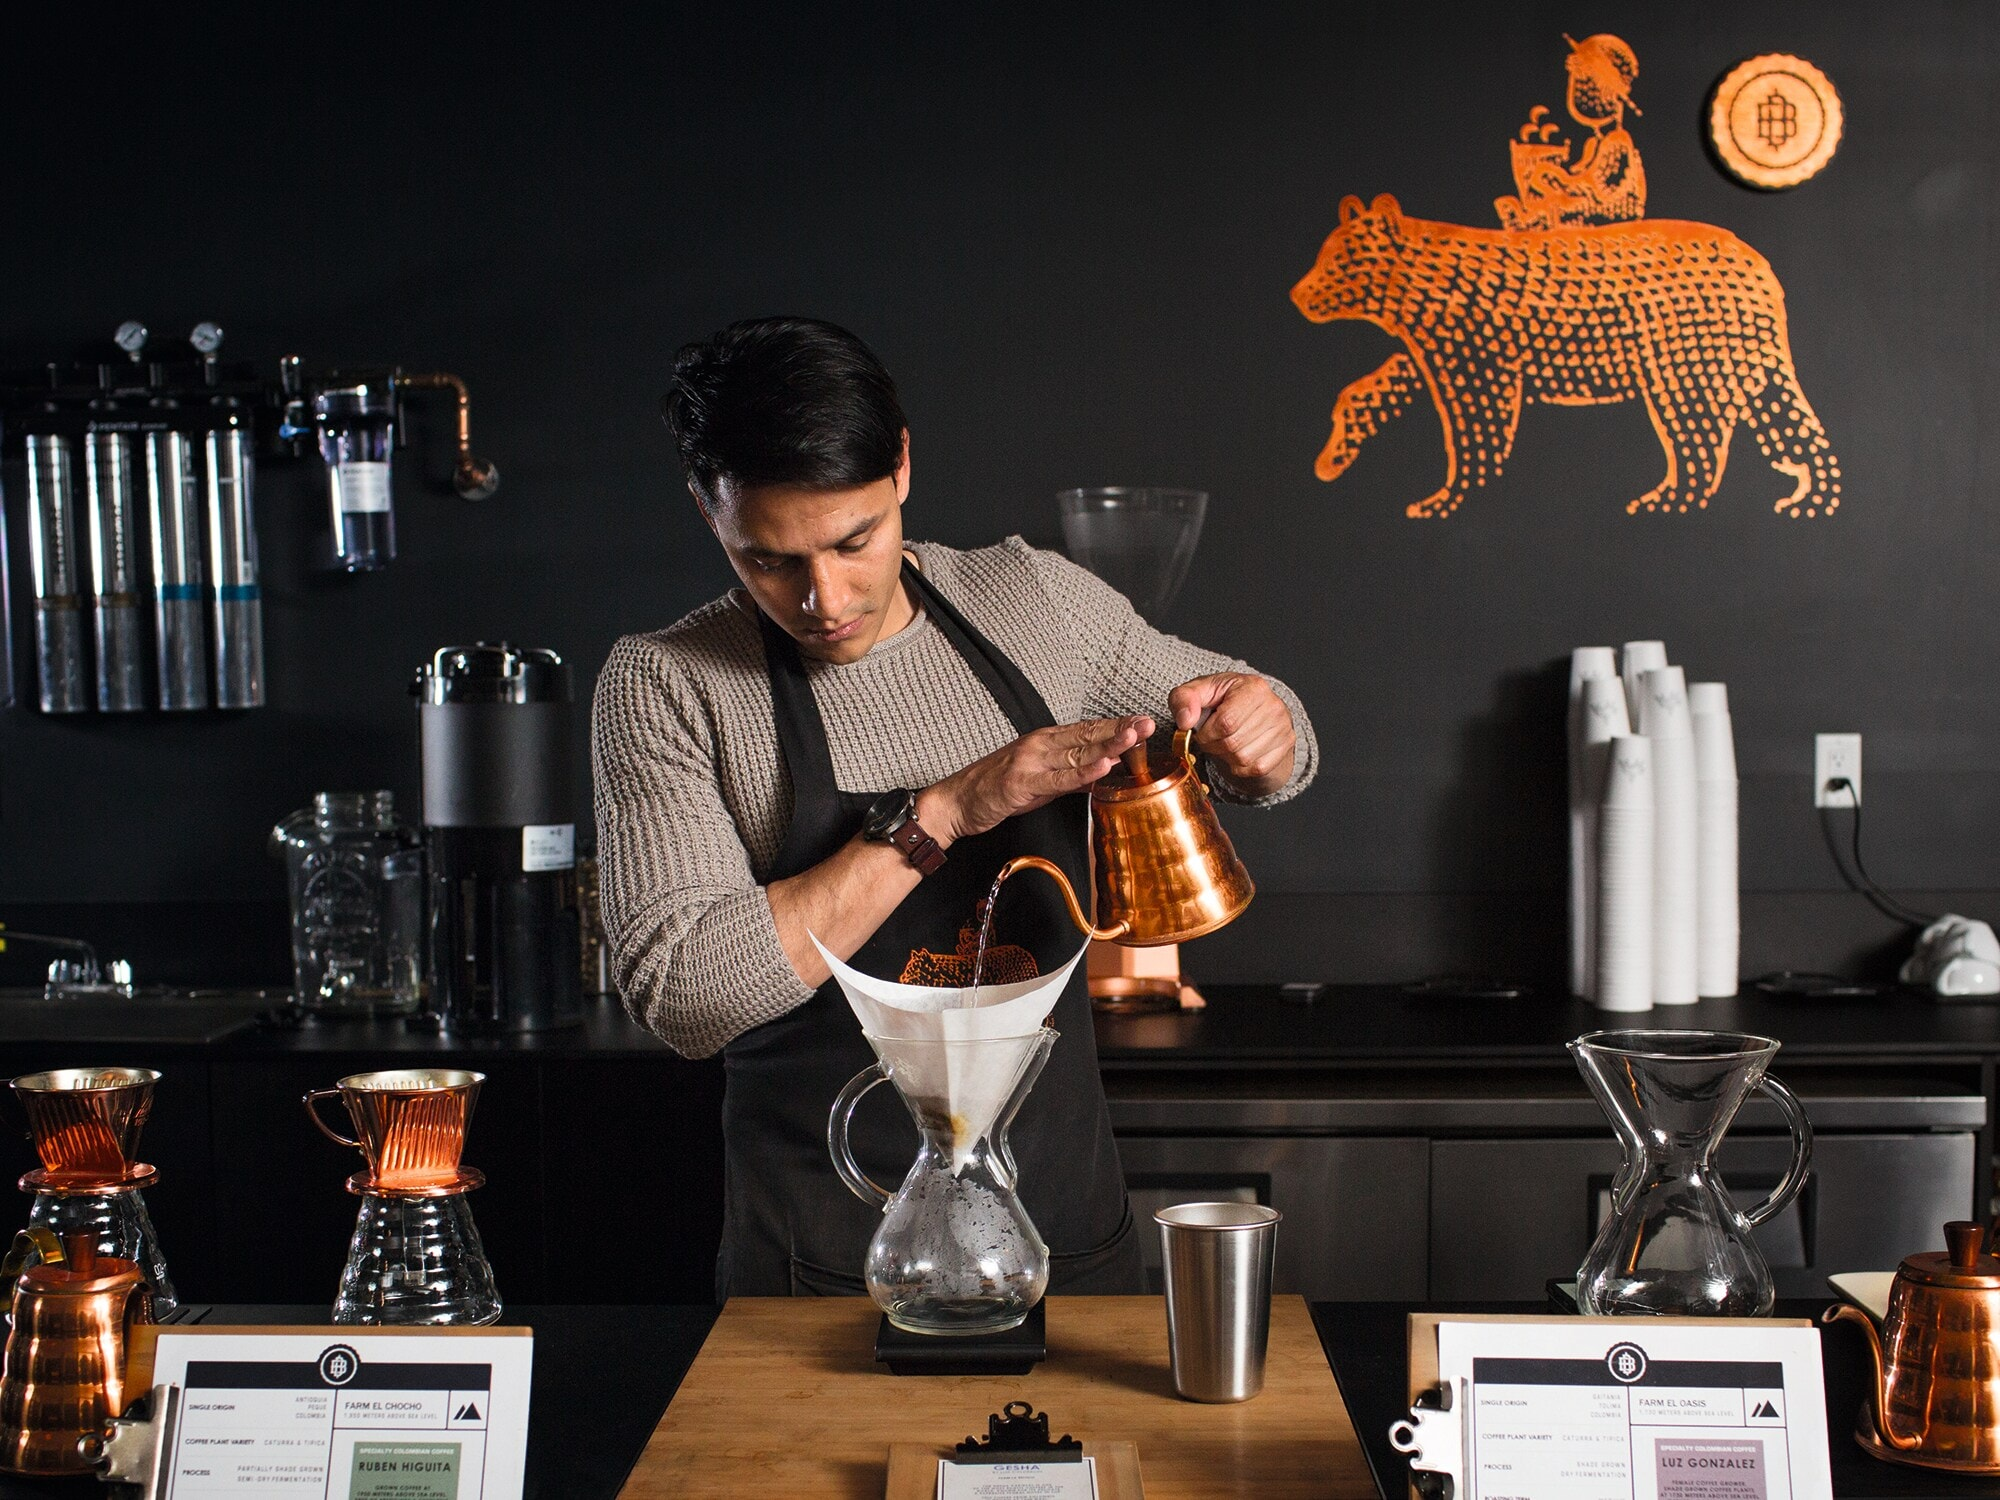 Andres of the Boy and the Bear makes coffee using a Chemex jar